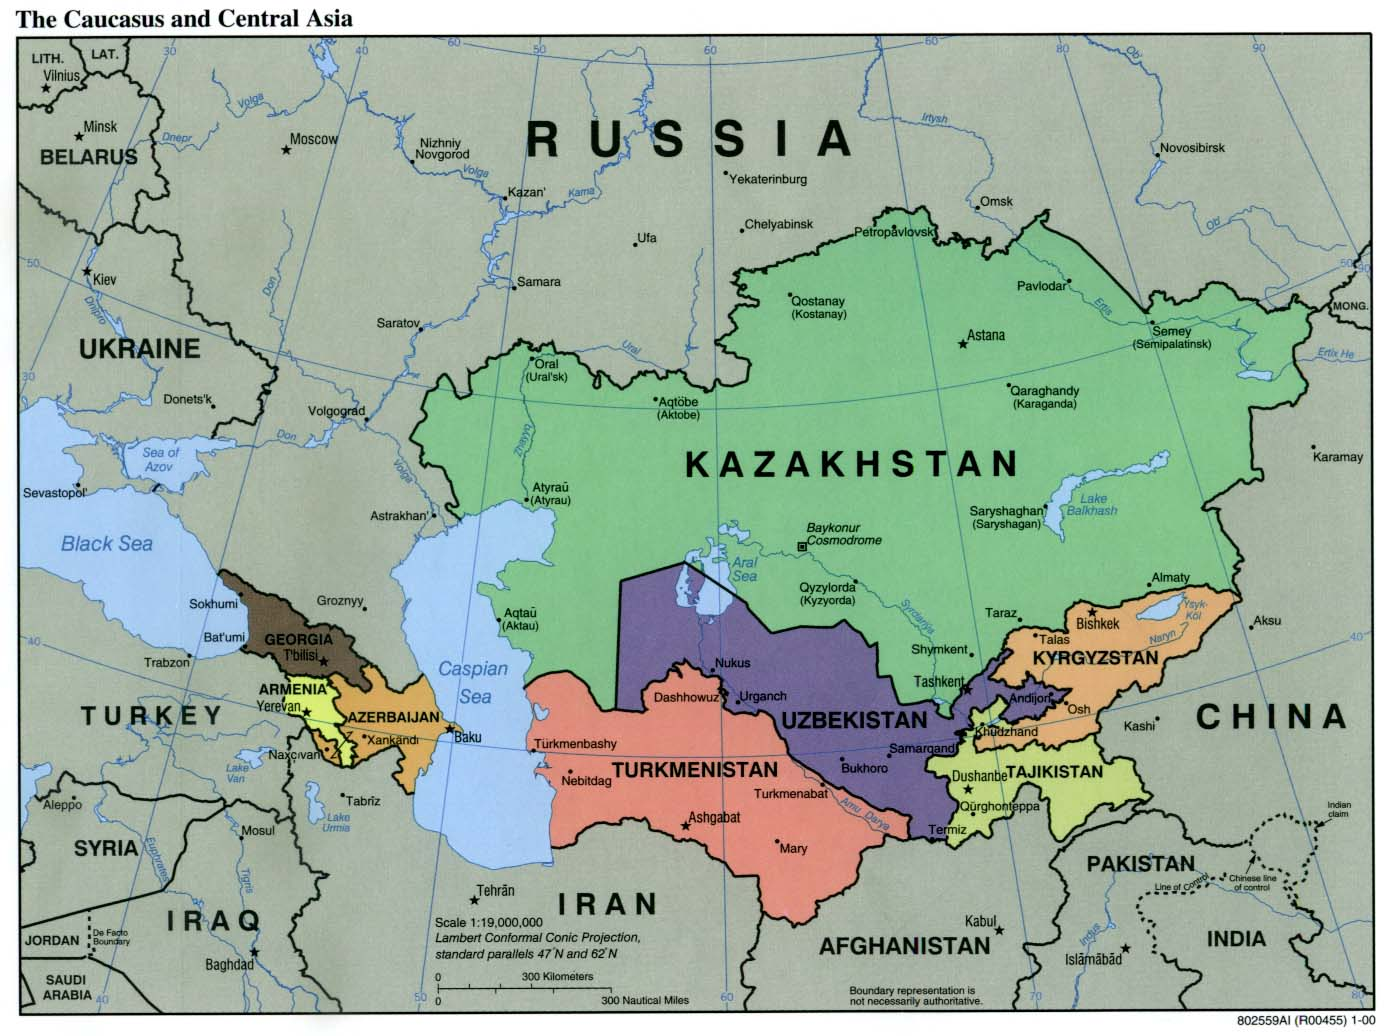 Four former Soviet countries in Central Asia are on the U.S. Commission on International Religious Freedom's list of violators. Photo: Wikimedia Commons / Central Asia Political Map